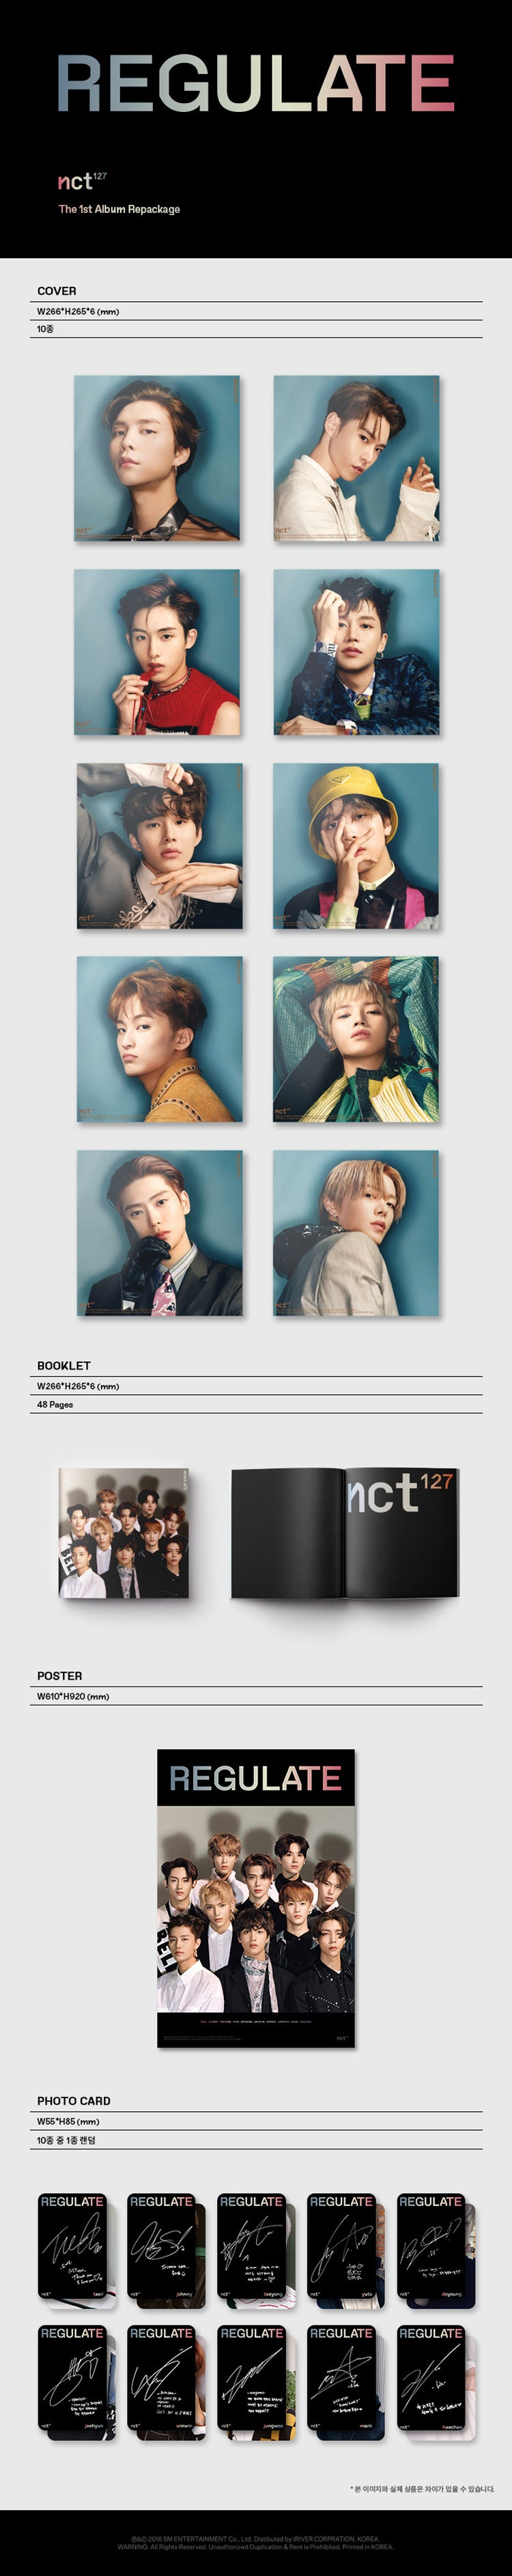 RE-RELEASE NCT 127 FIRST FULL ALBUM REPACKAGE [REGULATE] SOKOLLAB UK